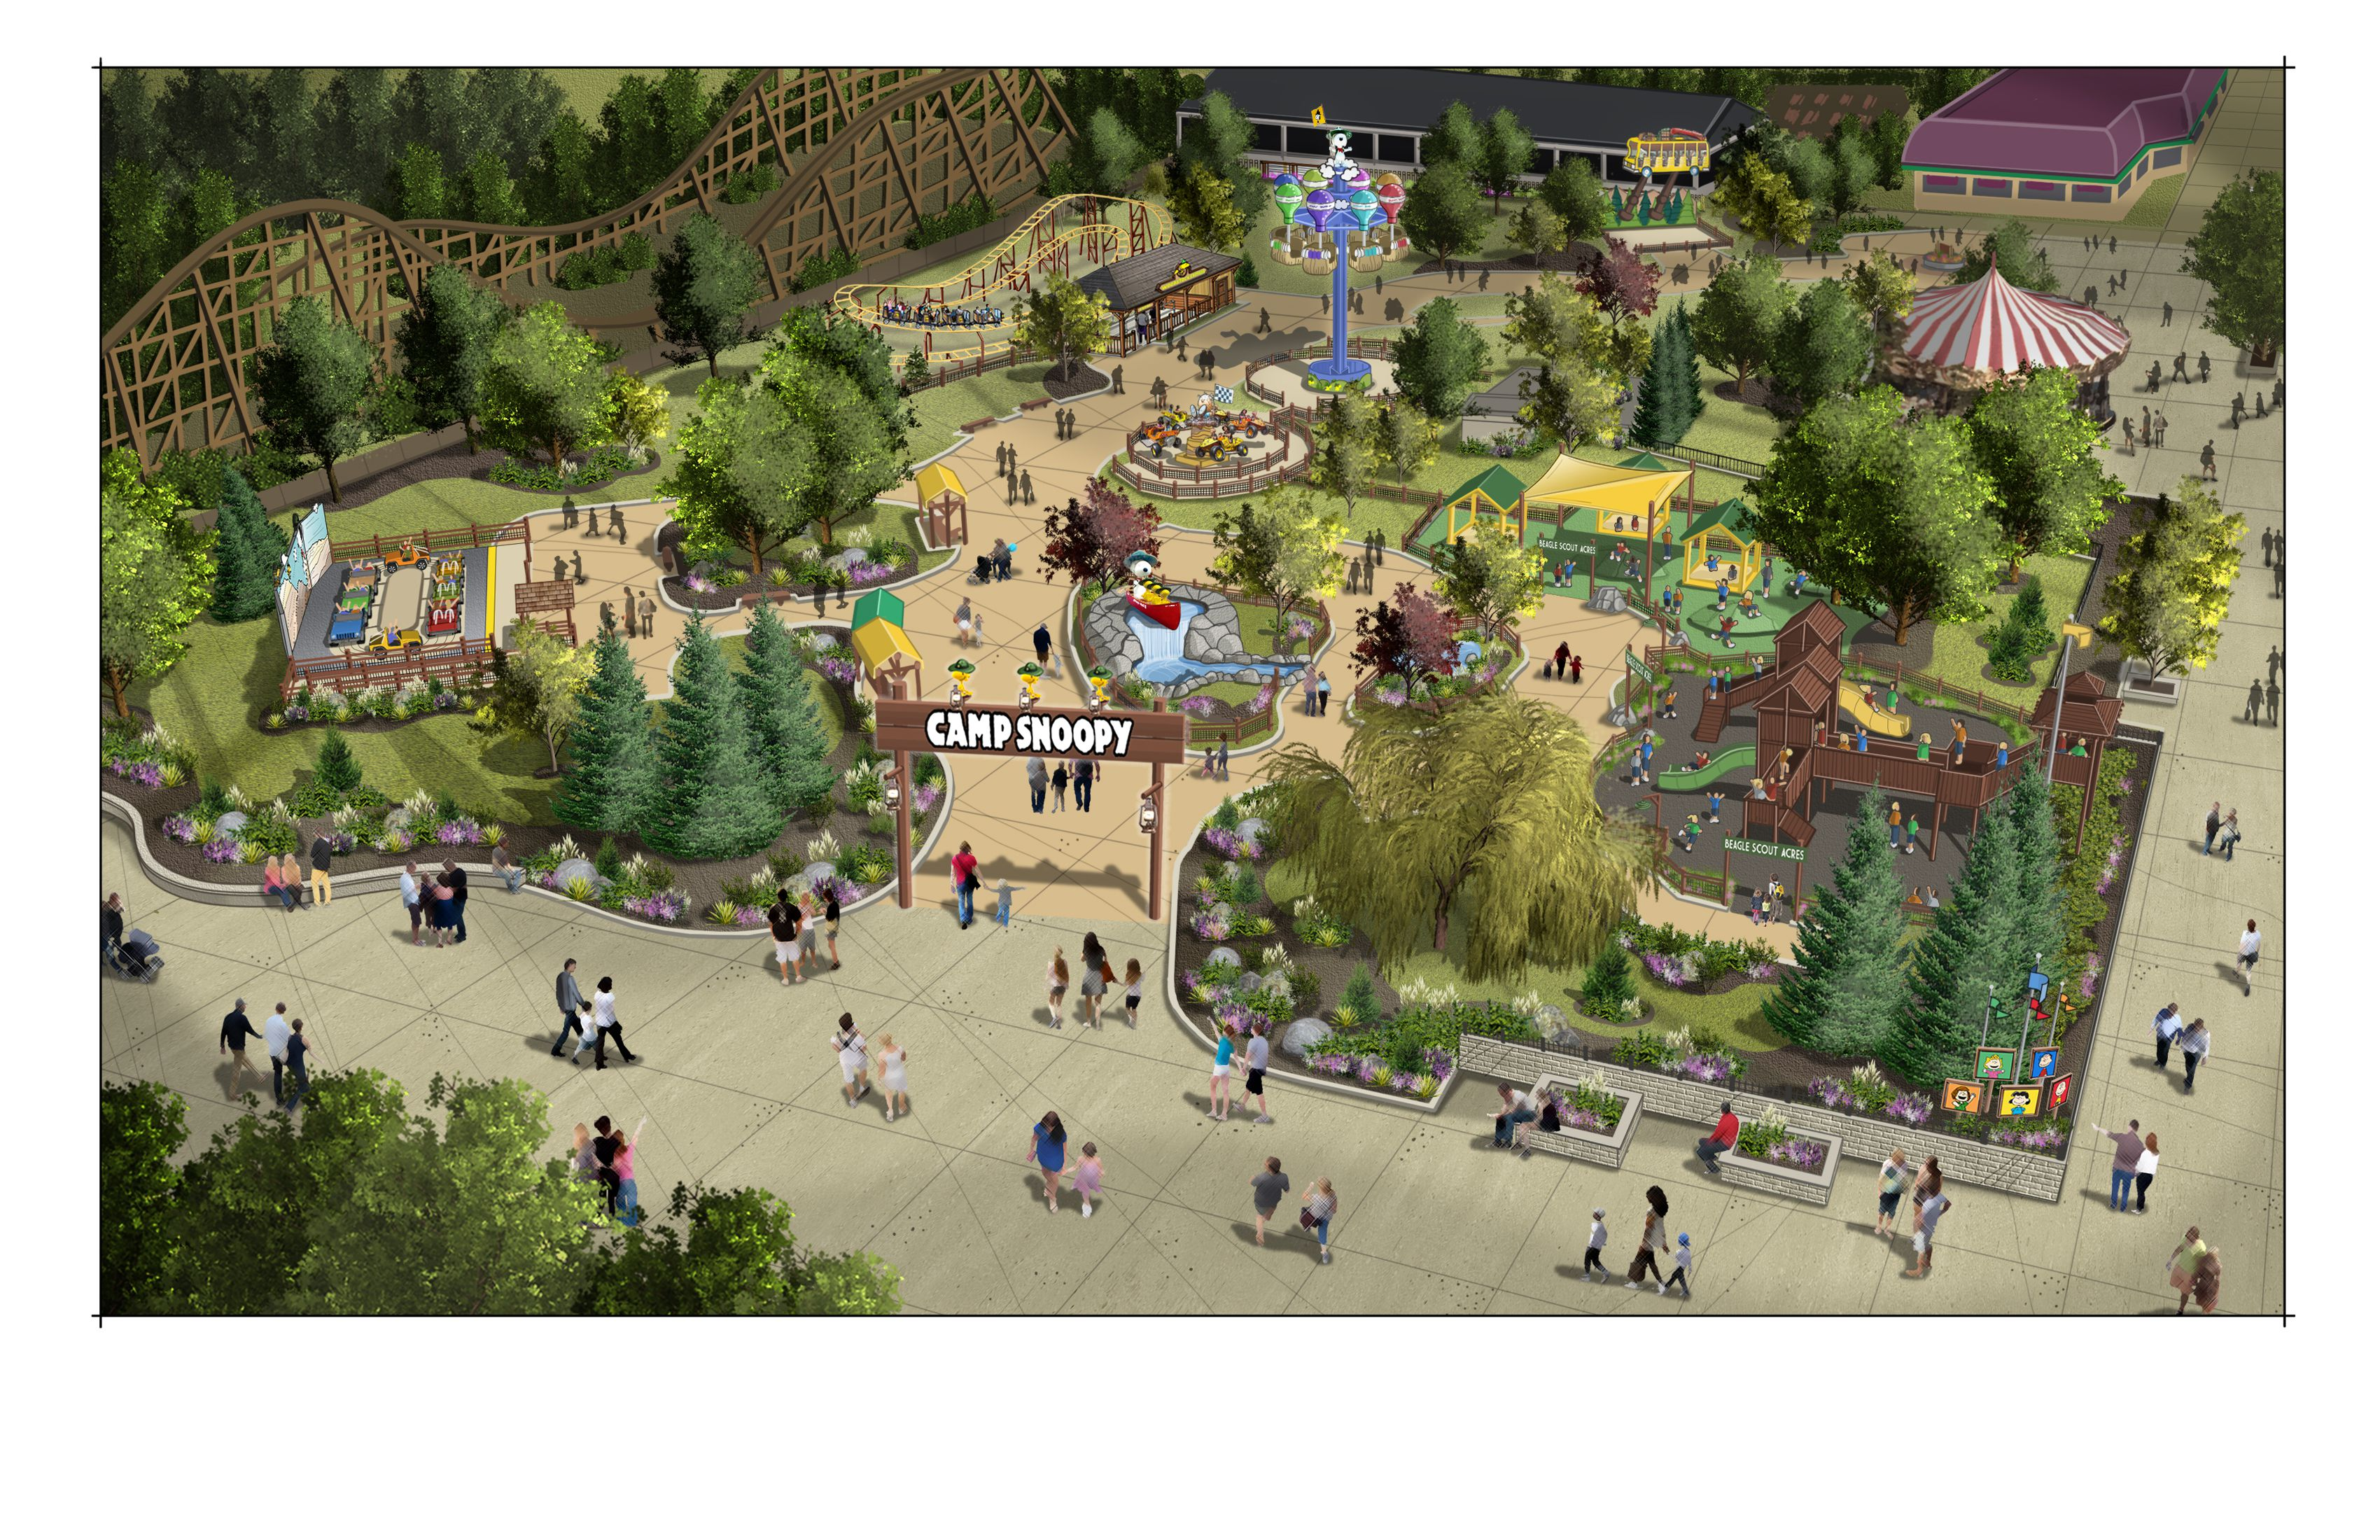 Michigan S Adventure To Open Snoopy Themed Park In 2020 Mlive Com